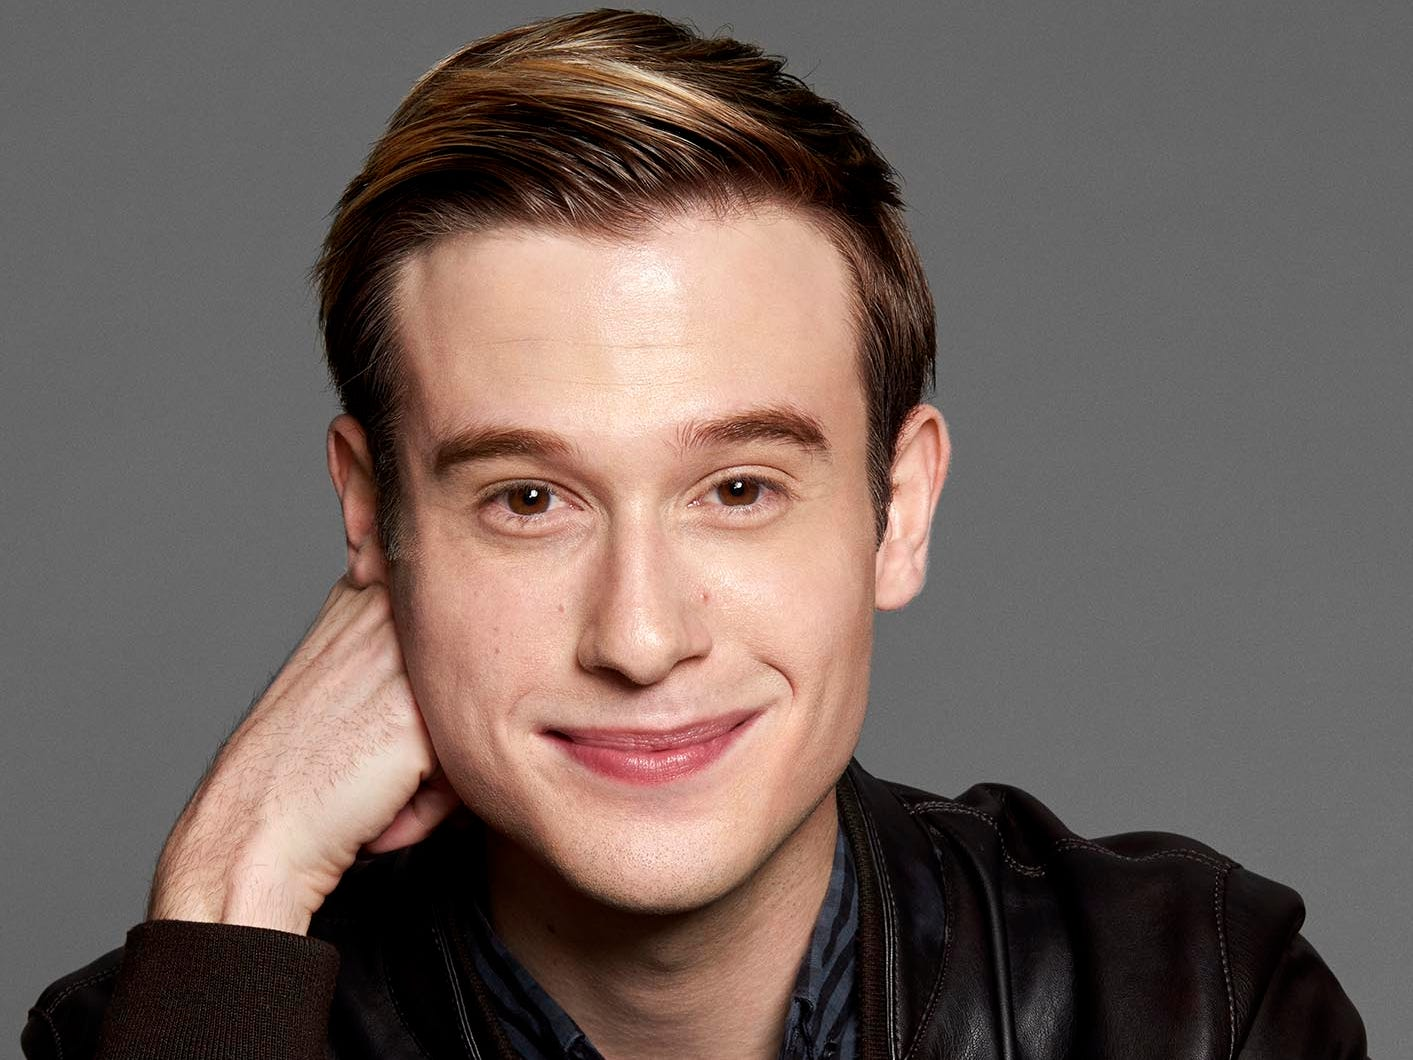 Tyler Henry will perform for a sold-out audience in Scottsdale on Friday, April 12.